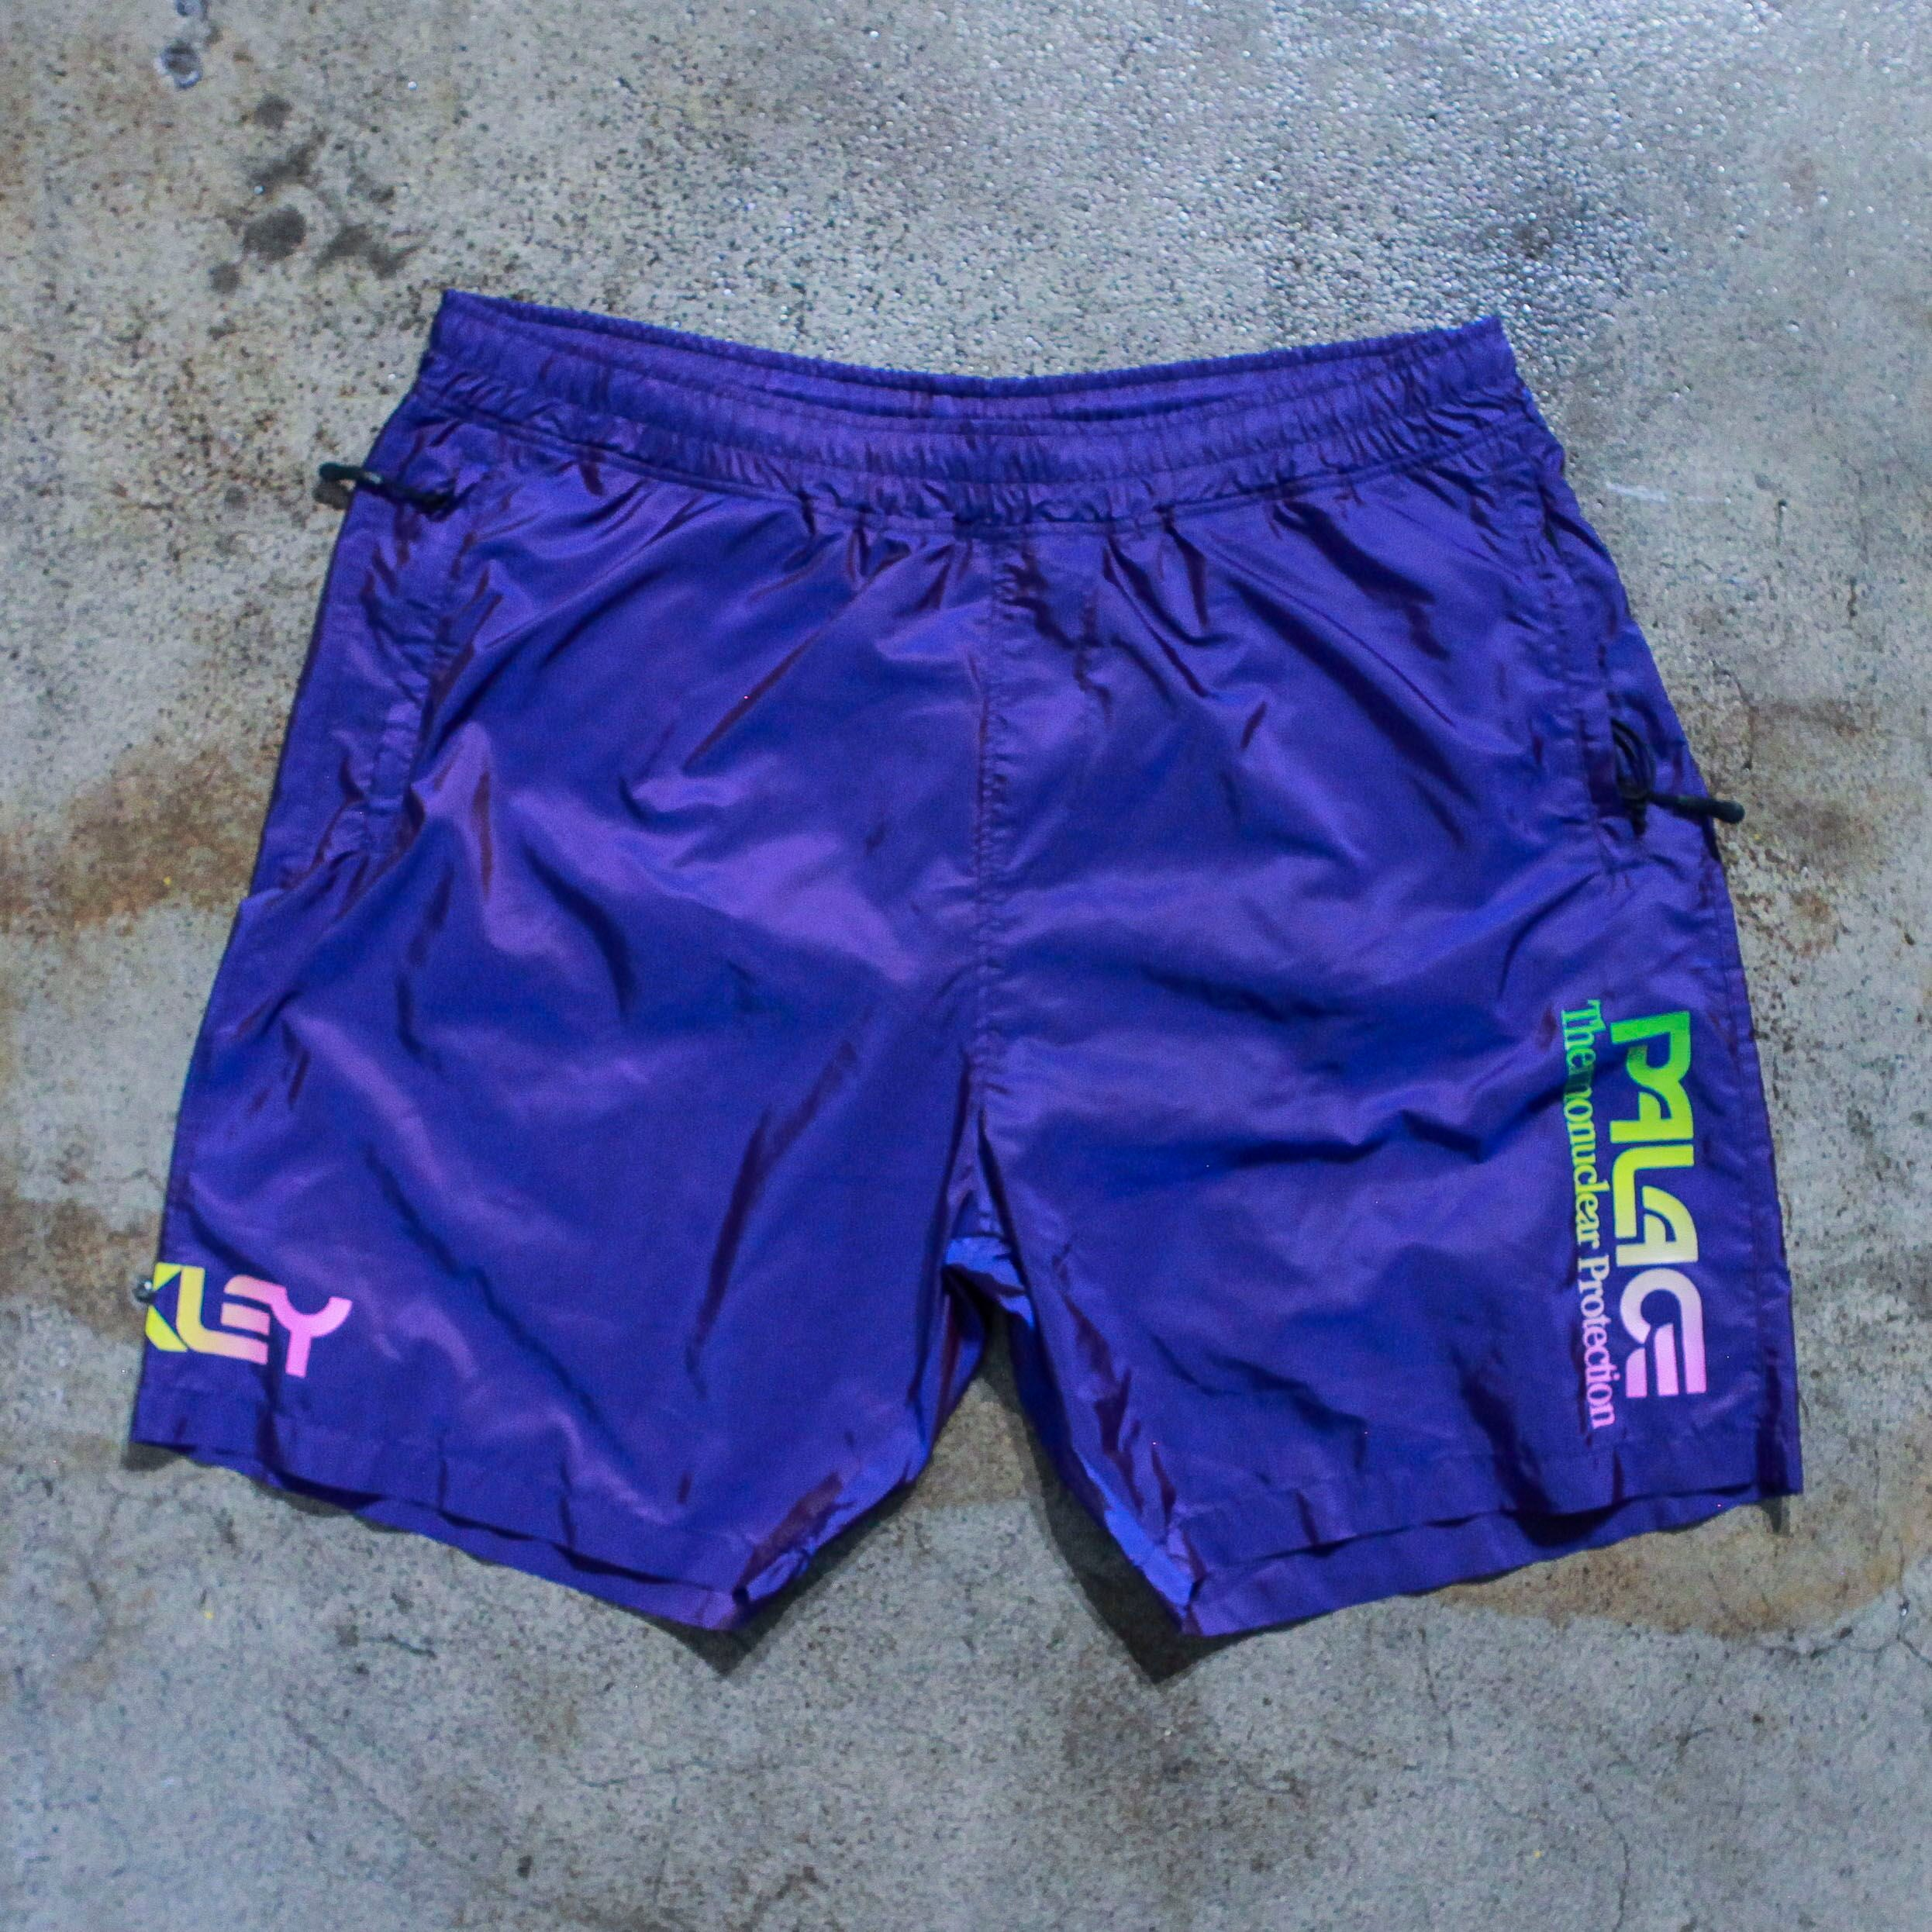 Oakley x Palace Purple Athletic Shorts